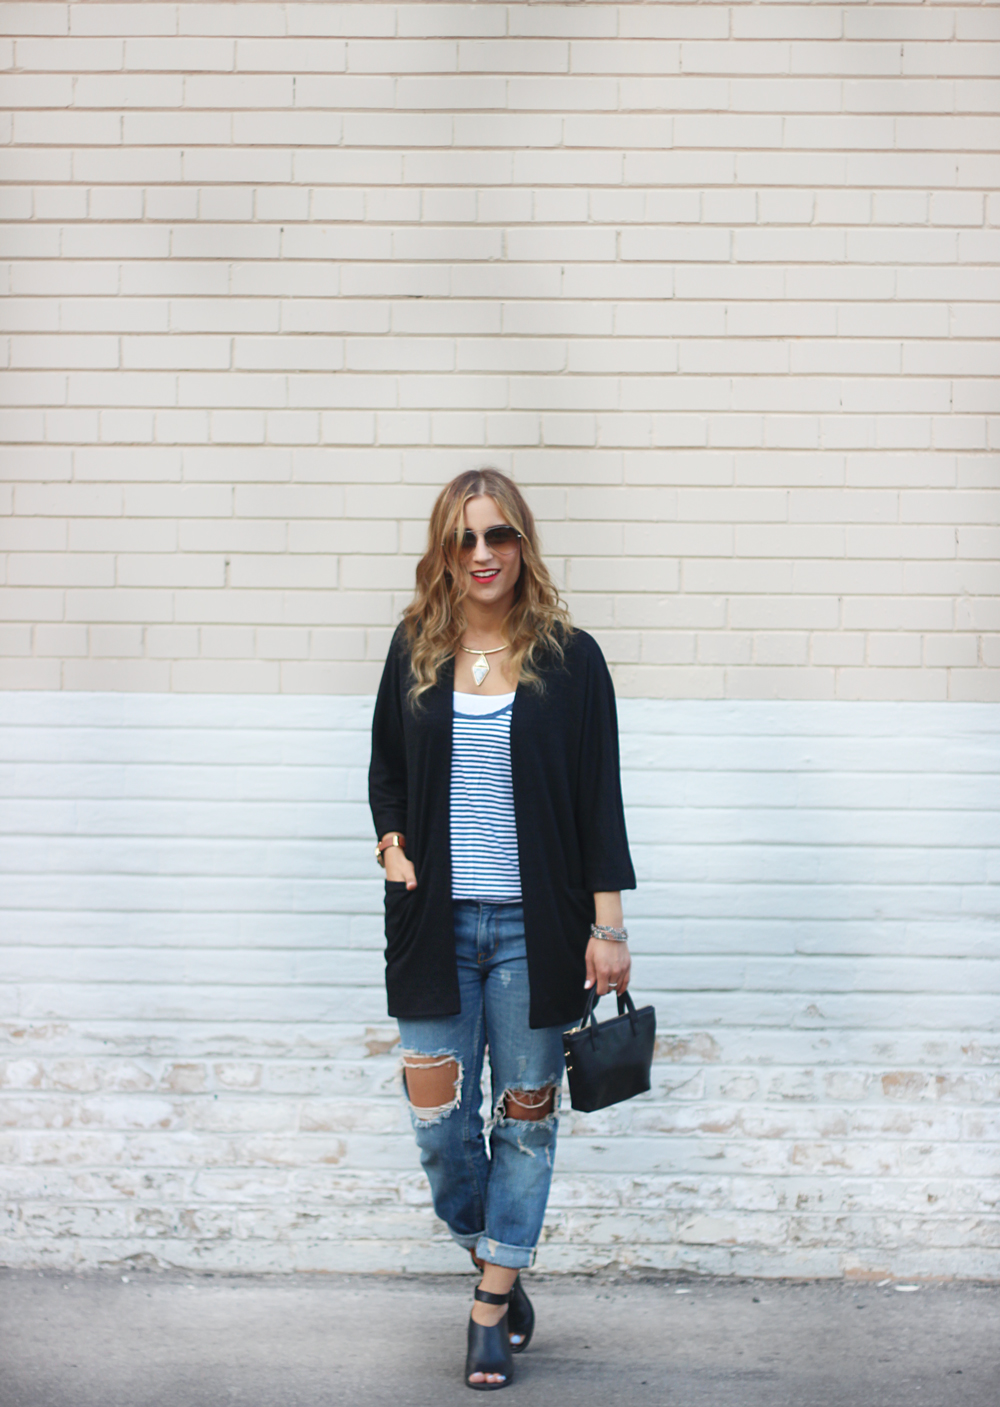 Summer outfit - Cardigan and Ripped Denim